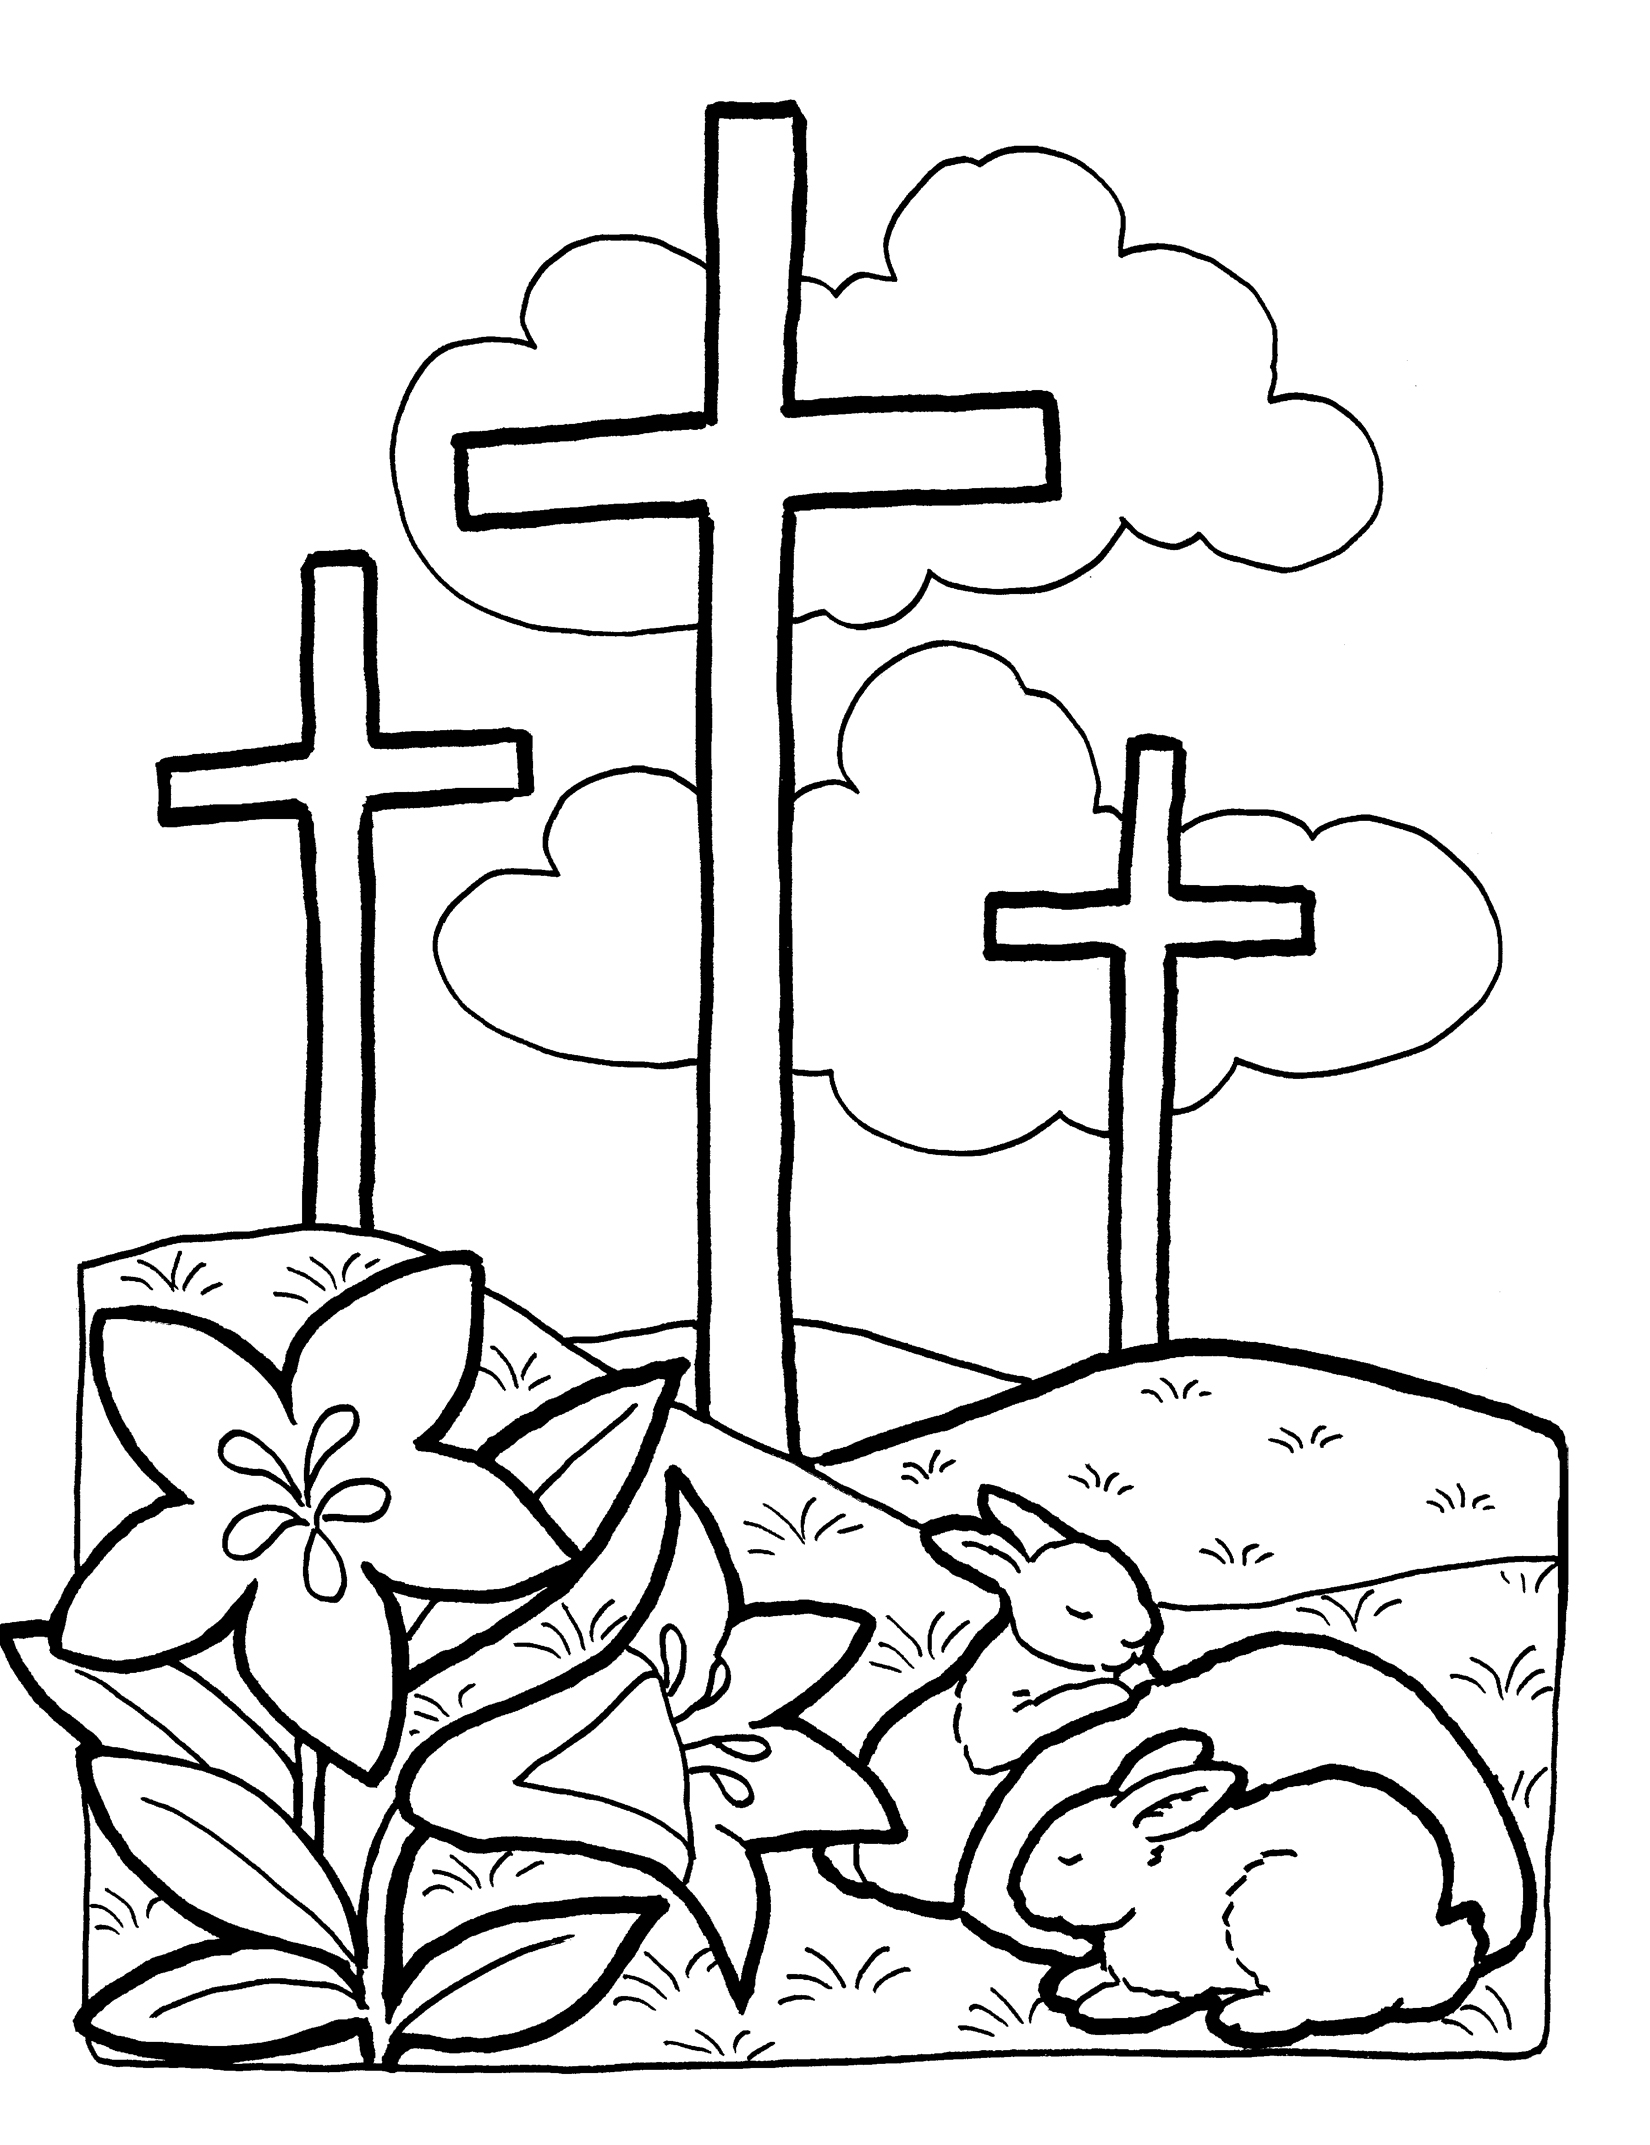 Easter Cross Black And White Clipart - Clipart Kid